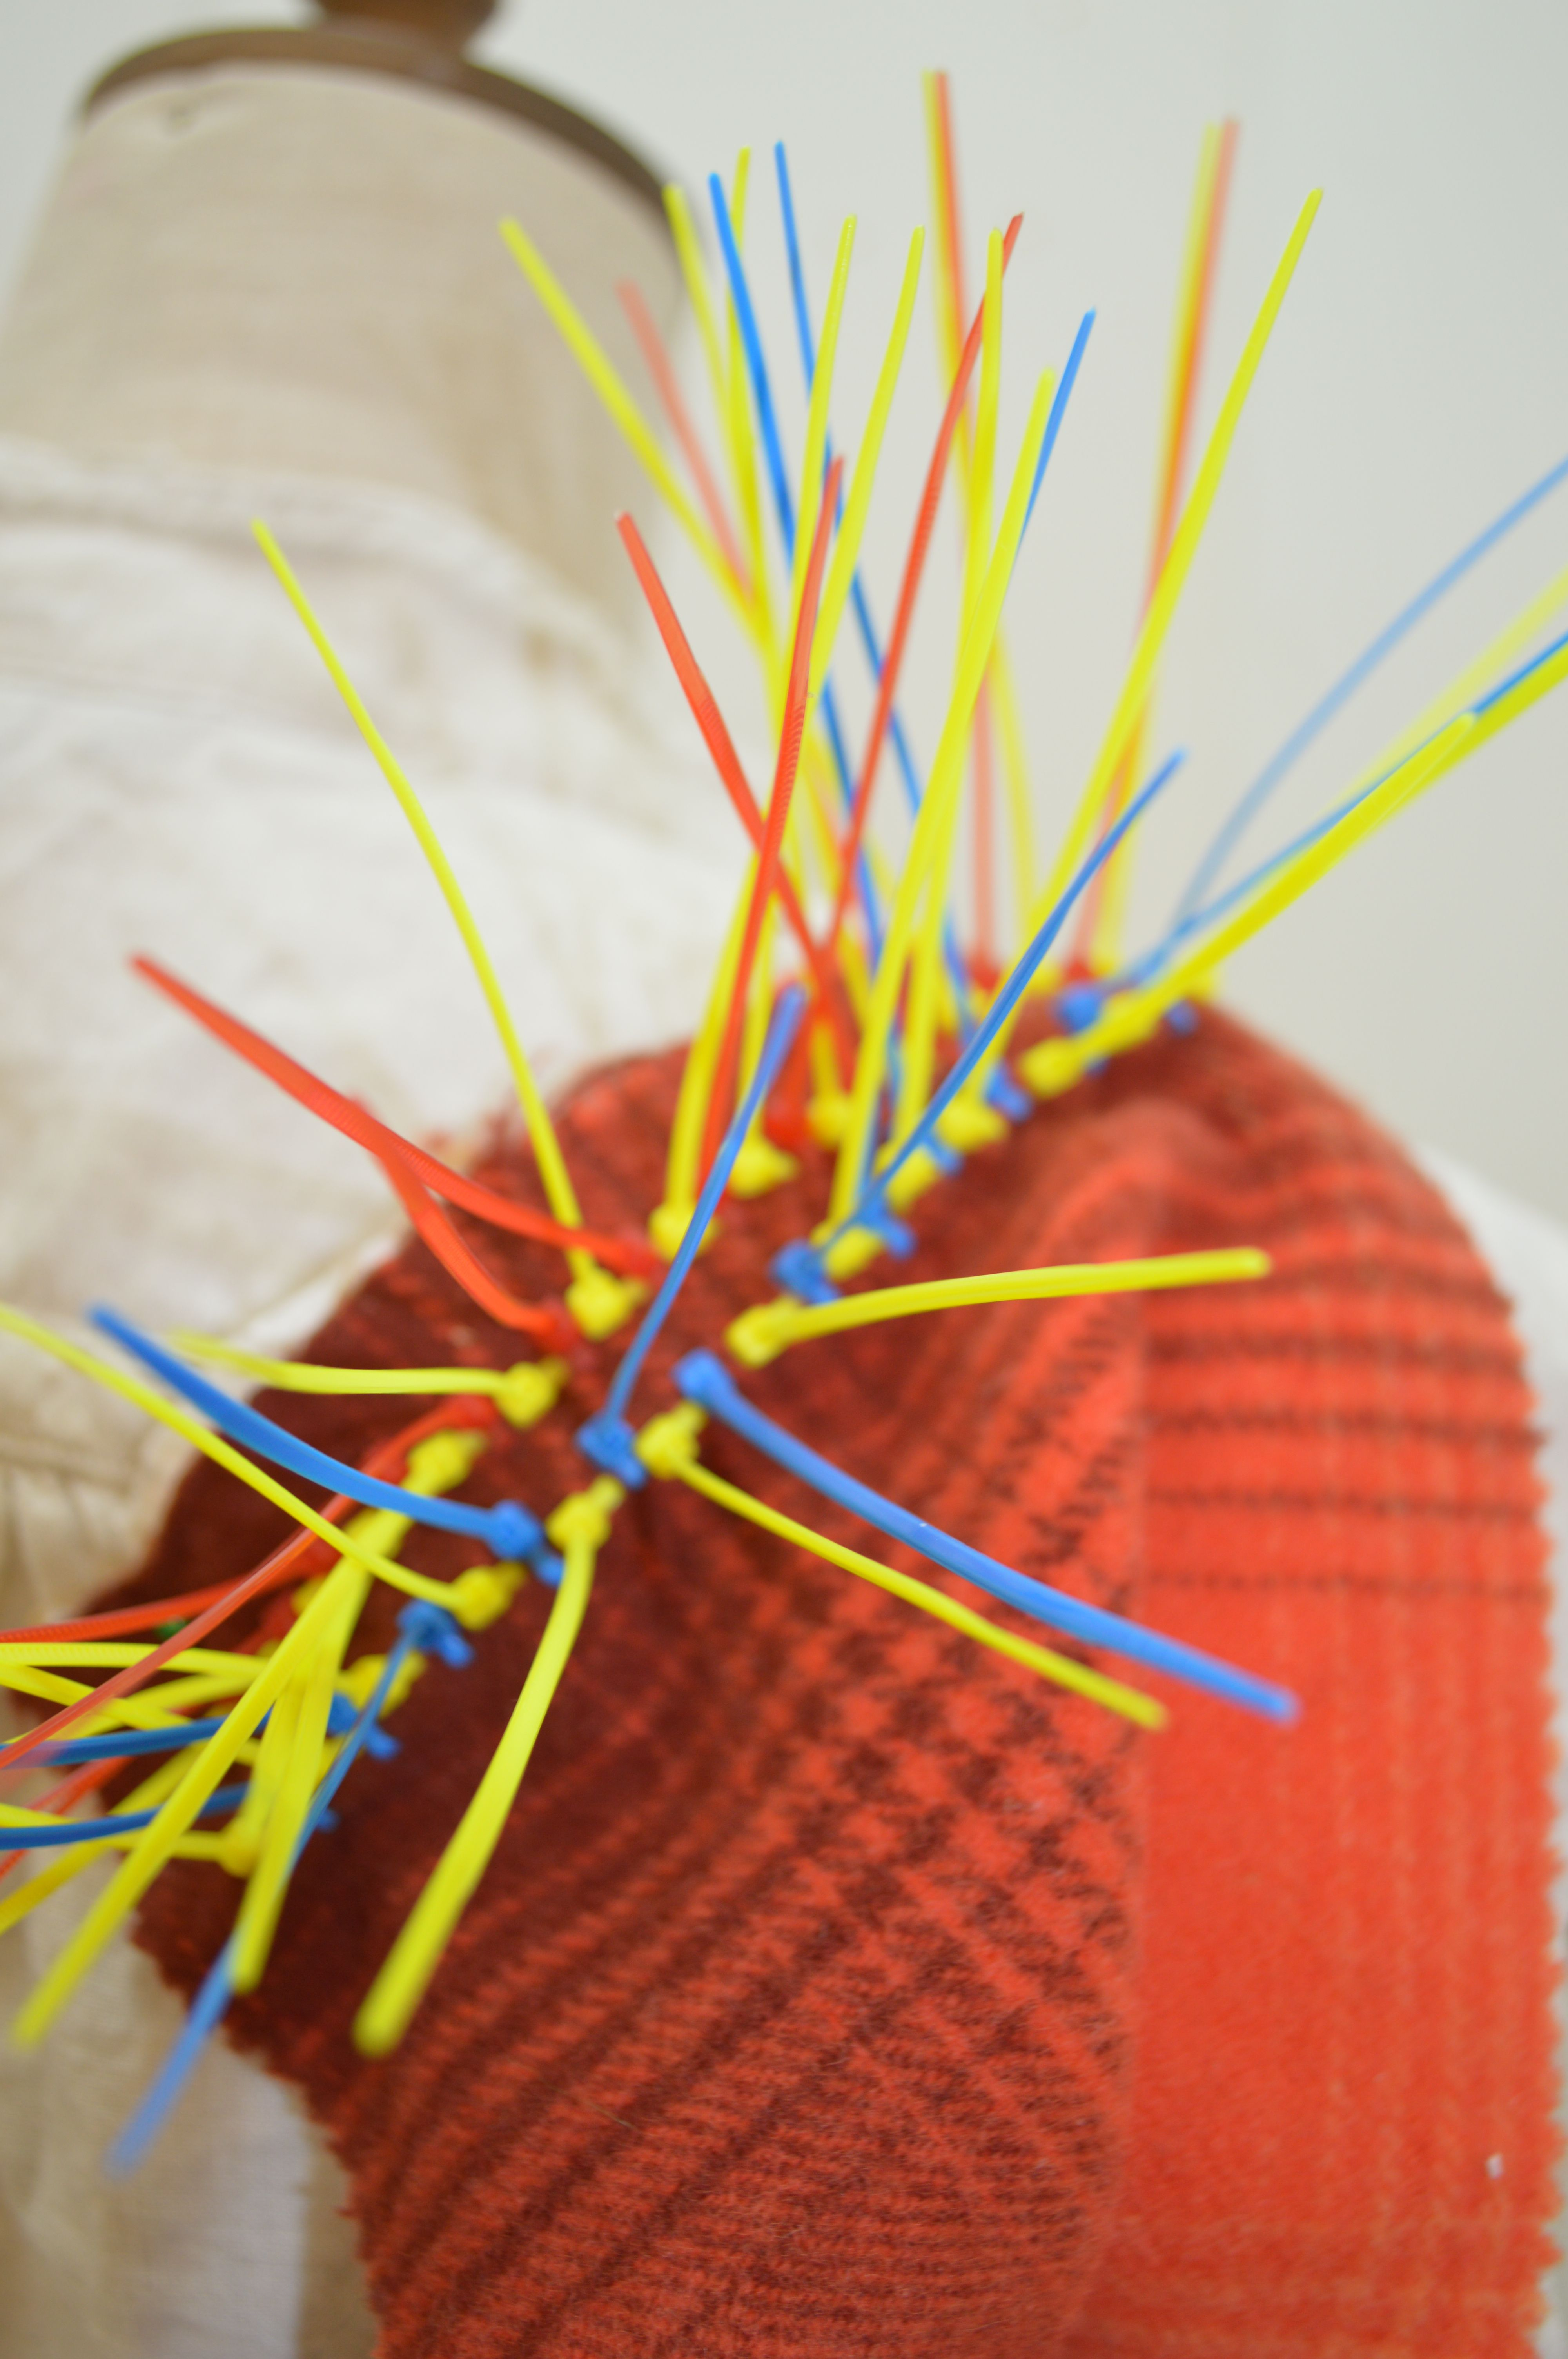 weaving with cable ties to create 3d texture NEED CABLE TIES? GREAT